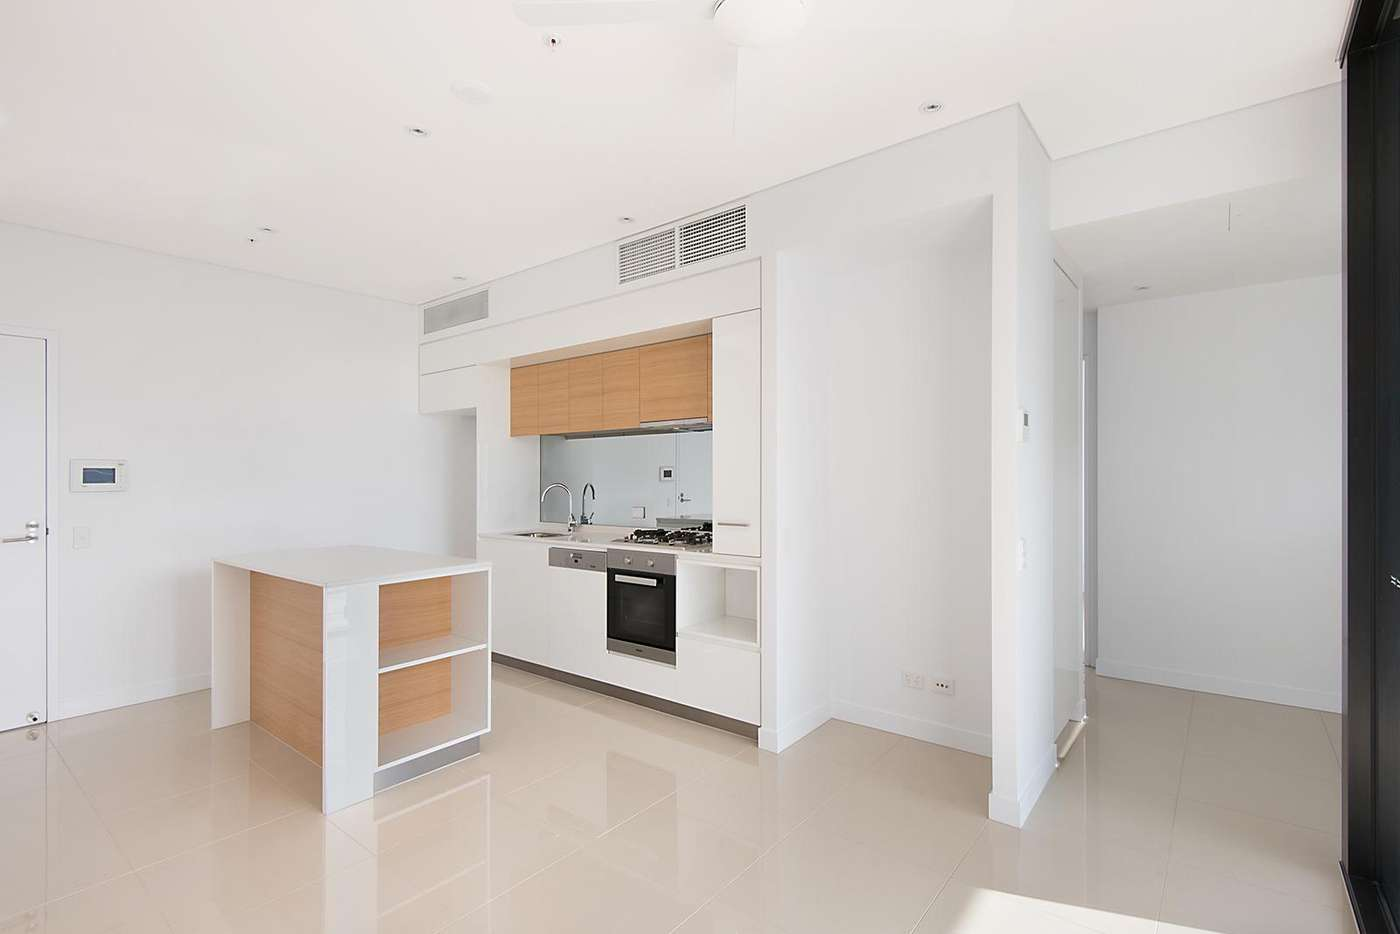 Main view of Homely apartment listing, 3103/33 Remora Road, Hamilton QLD 4007